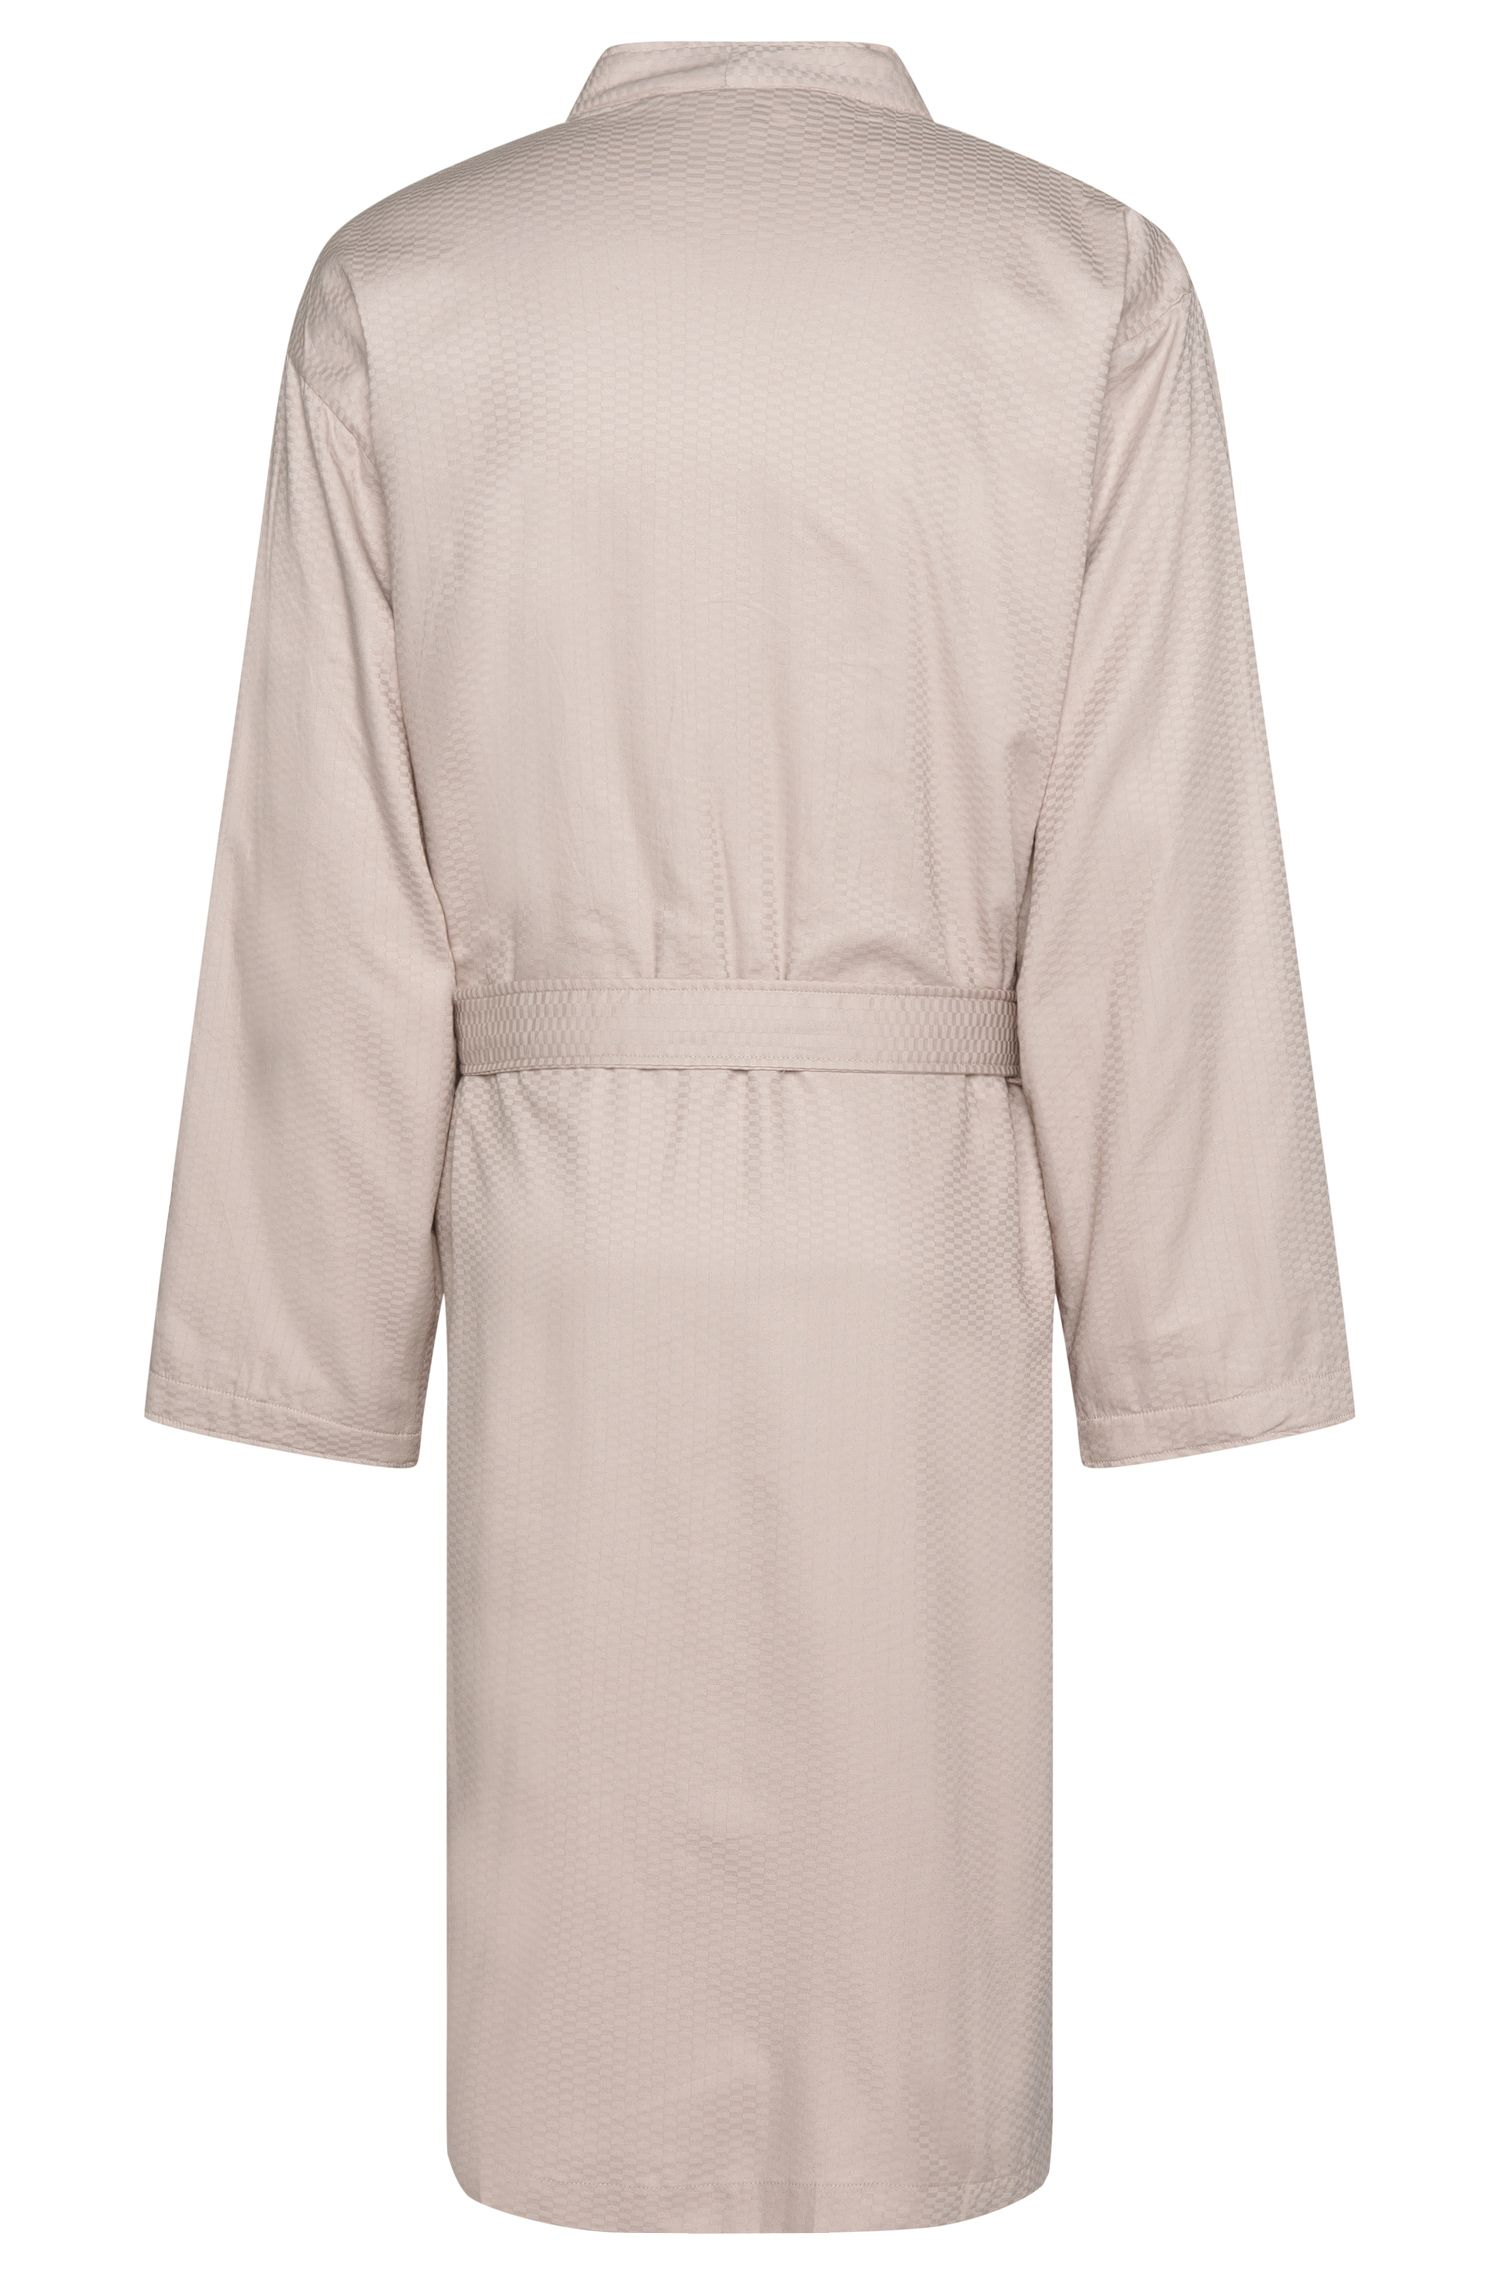 Kimono in satin di puro cotone con fodera interna in terry, Beige